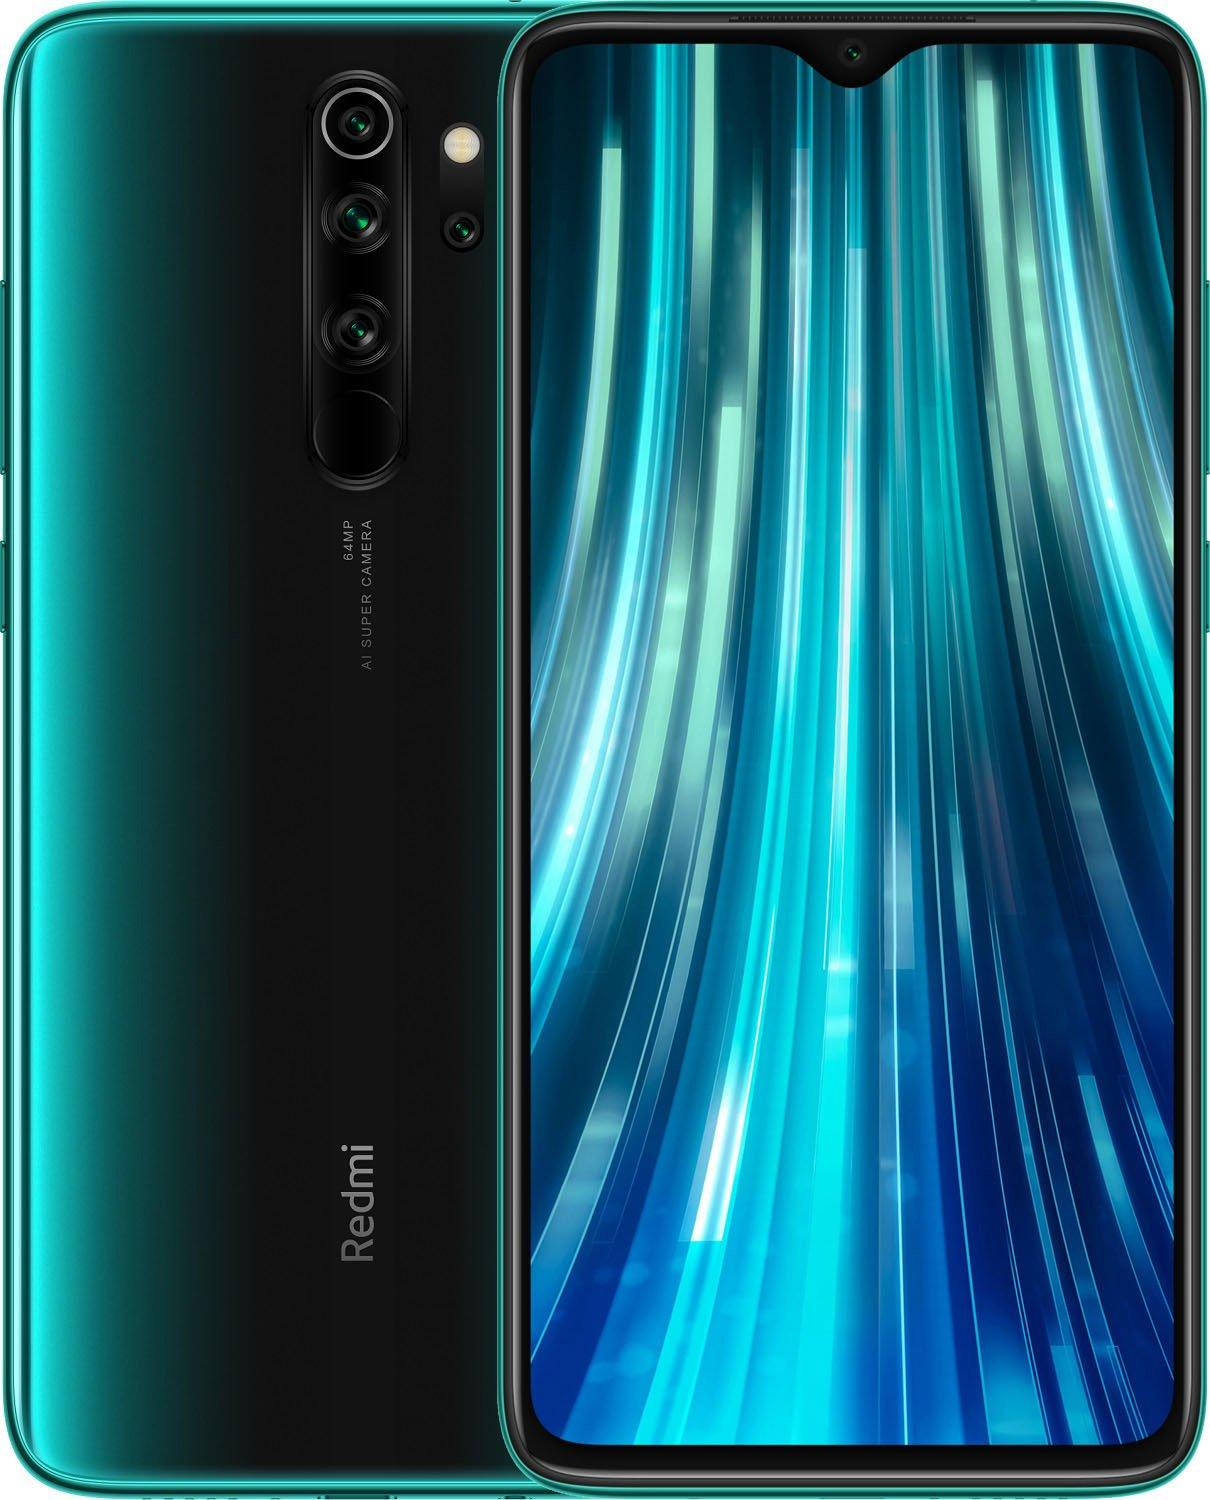 Смартфон Xiaomi Redmi Note 8 Pro 6/128Gb Forest Green: Фото 1